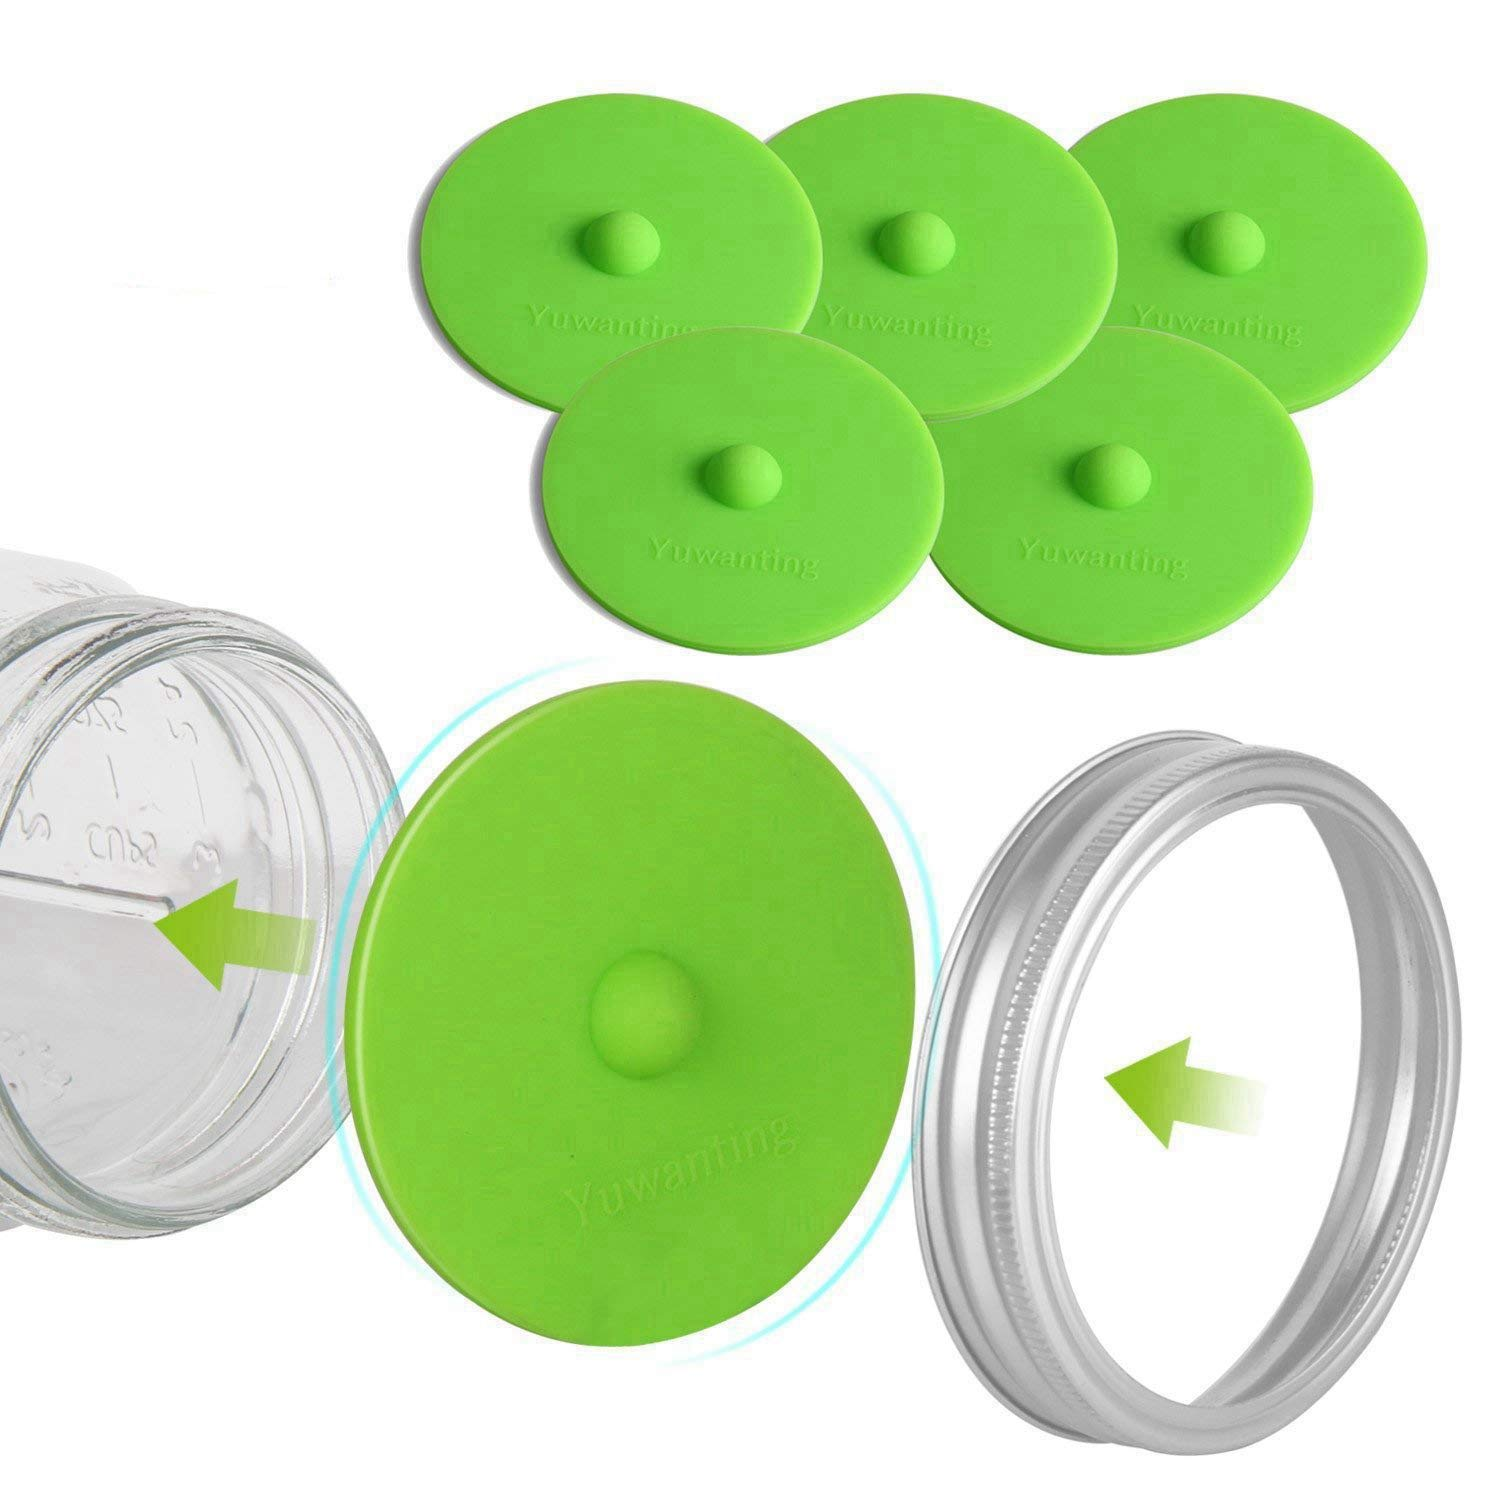 Fermentation Lids for Wide Mouth Mason Jars, Made of Maintenance Free Silicone Airlock Waterless and BPA Free, 5 Pcs(Green) by YUWANTING